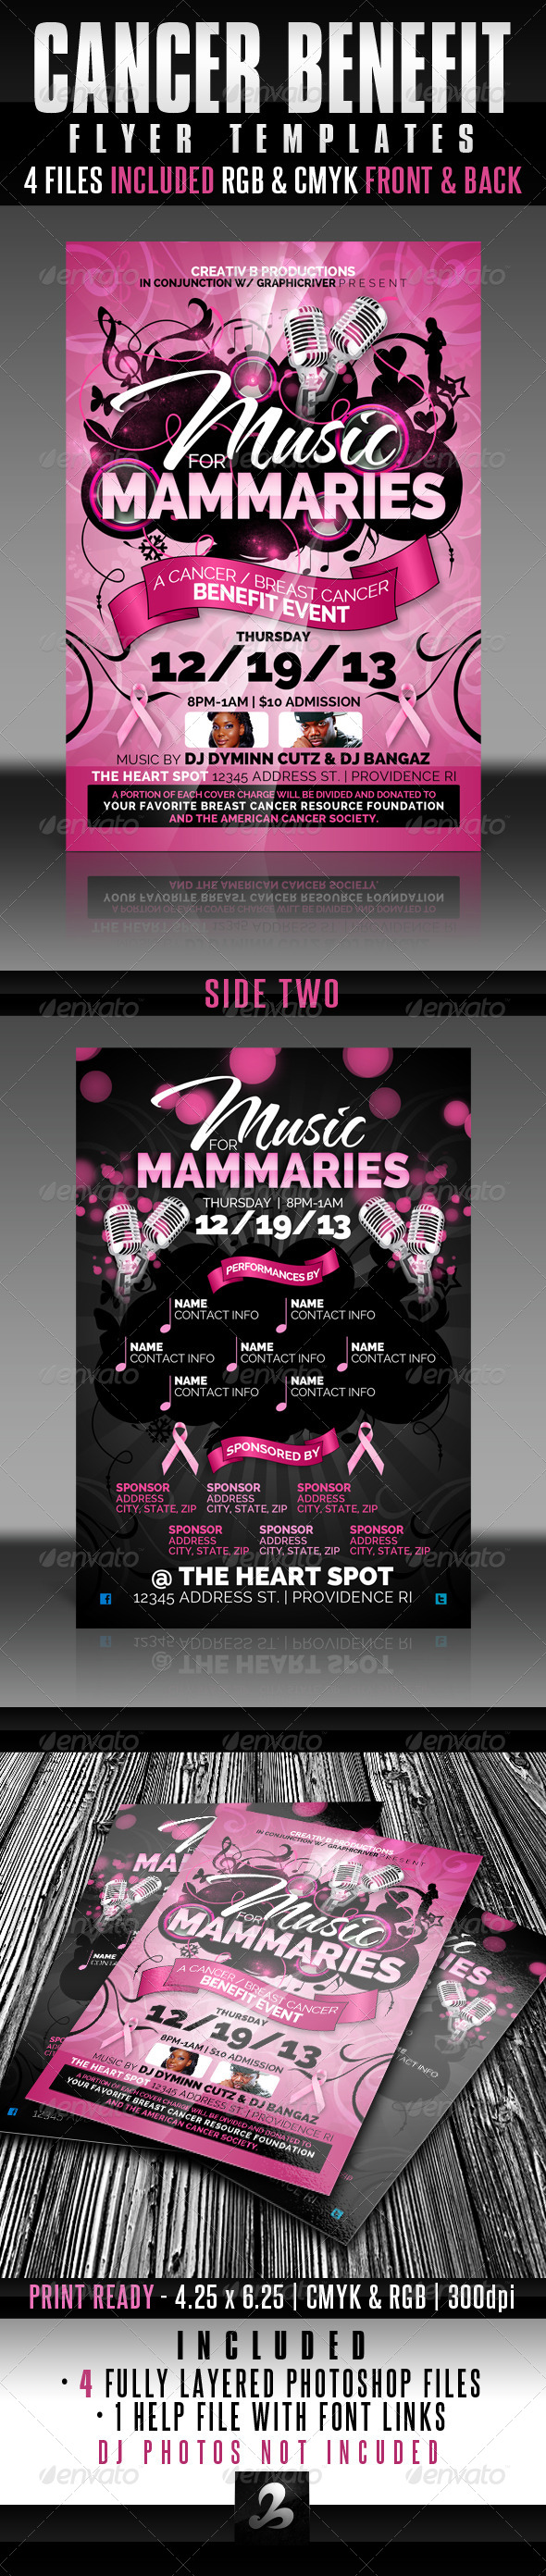 Cancer Benefit Flyer Templates   Events Flyers  Donation Flyer Template